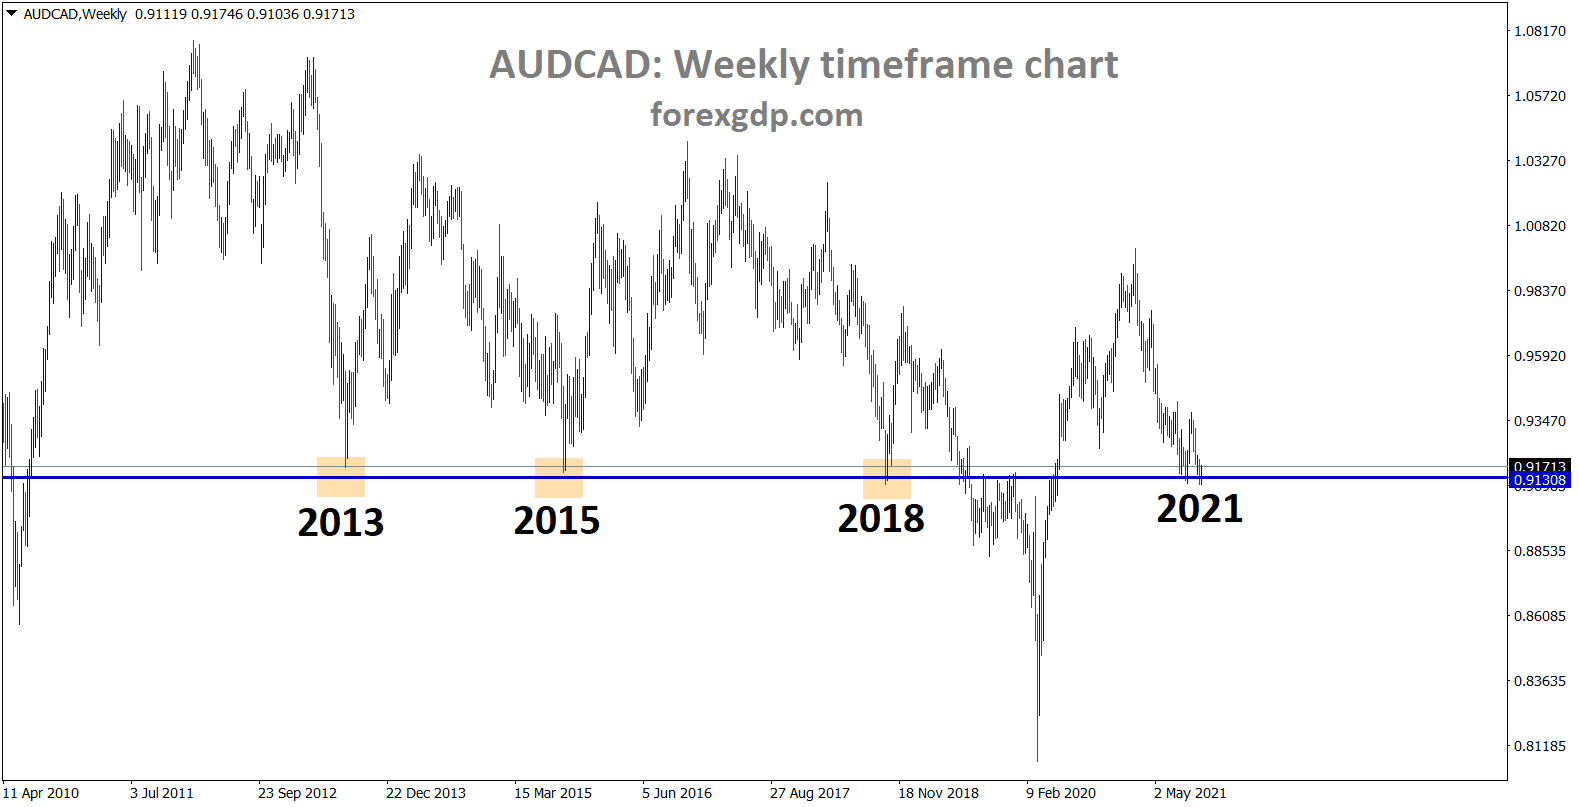 AUDCAD hits the major support area again after 3 years